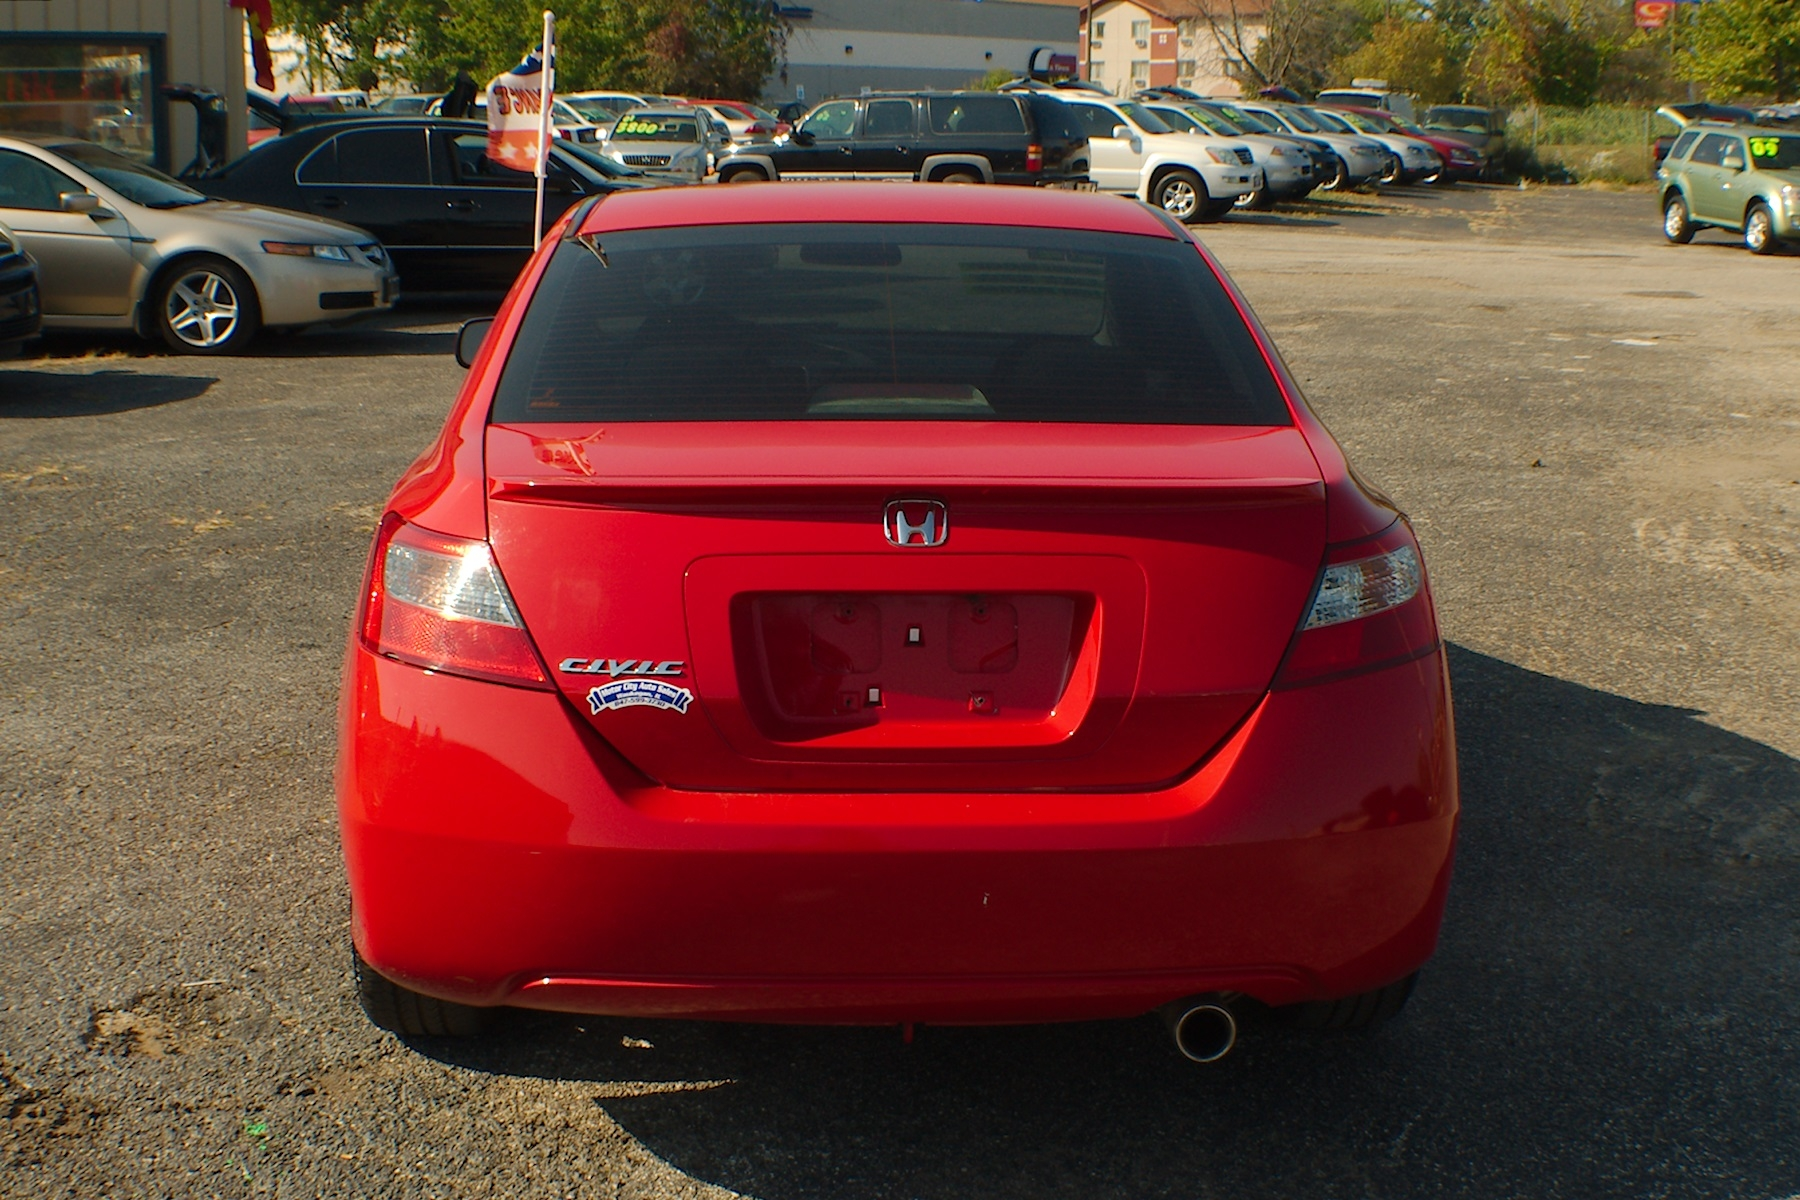 2011 honda civic red sport coupe used car sale. Black Bedroom Furniture Sets. Home Design Ideas